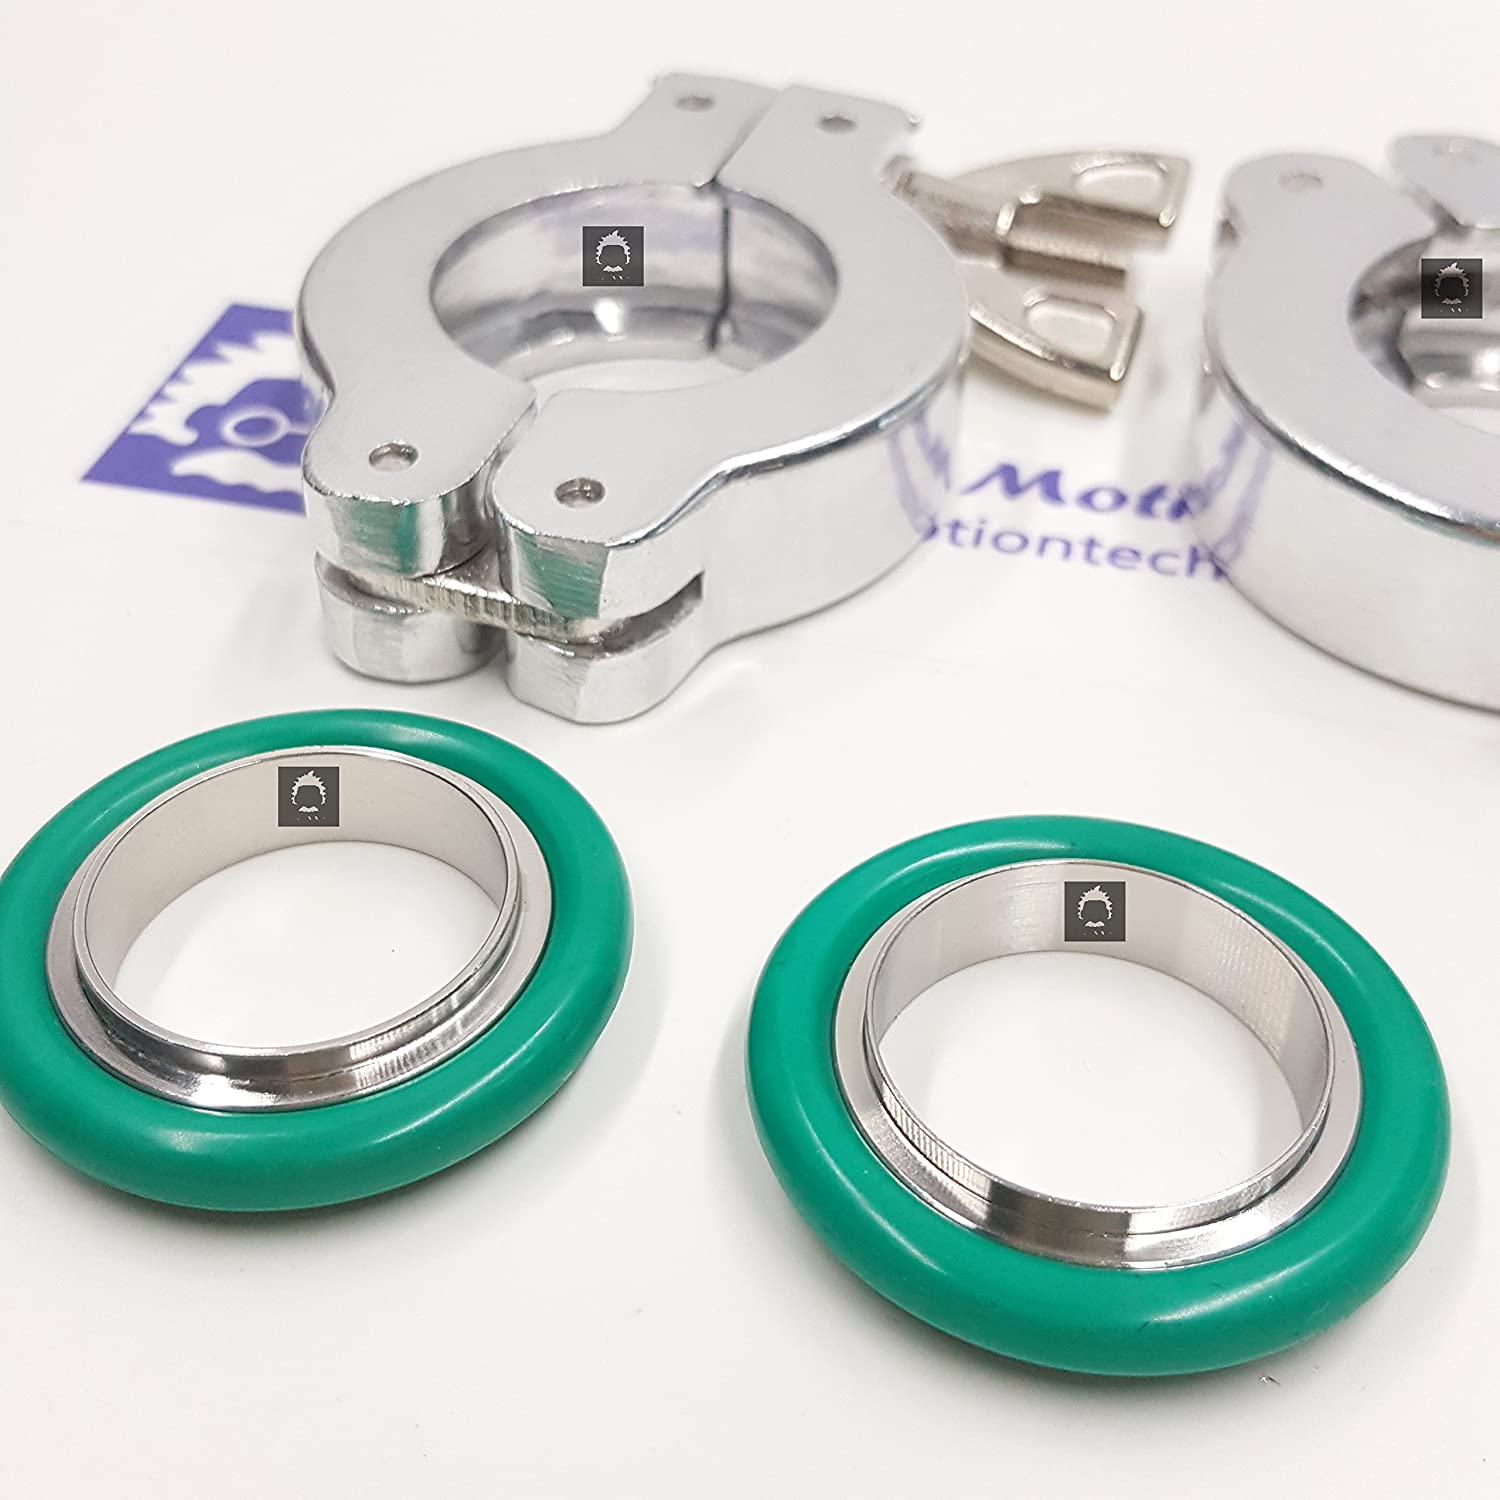 Fkm Viton Bmt Lot Of 2 Sets Kf 25 Aluminium Wing Nut Flange Clamp Kf25 Stainless Steel 304 Centering Ring Green O Ring Quick Connect Hose Fittings